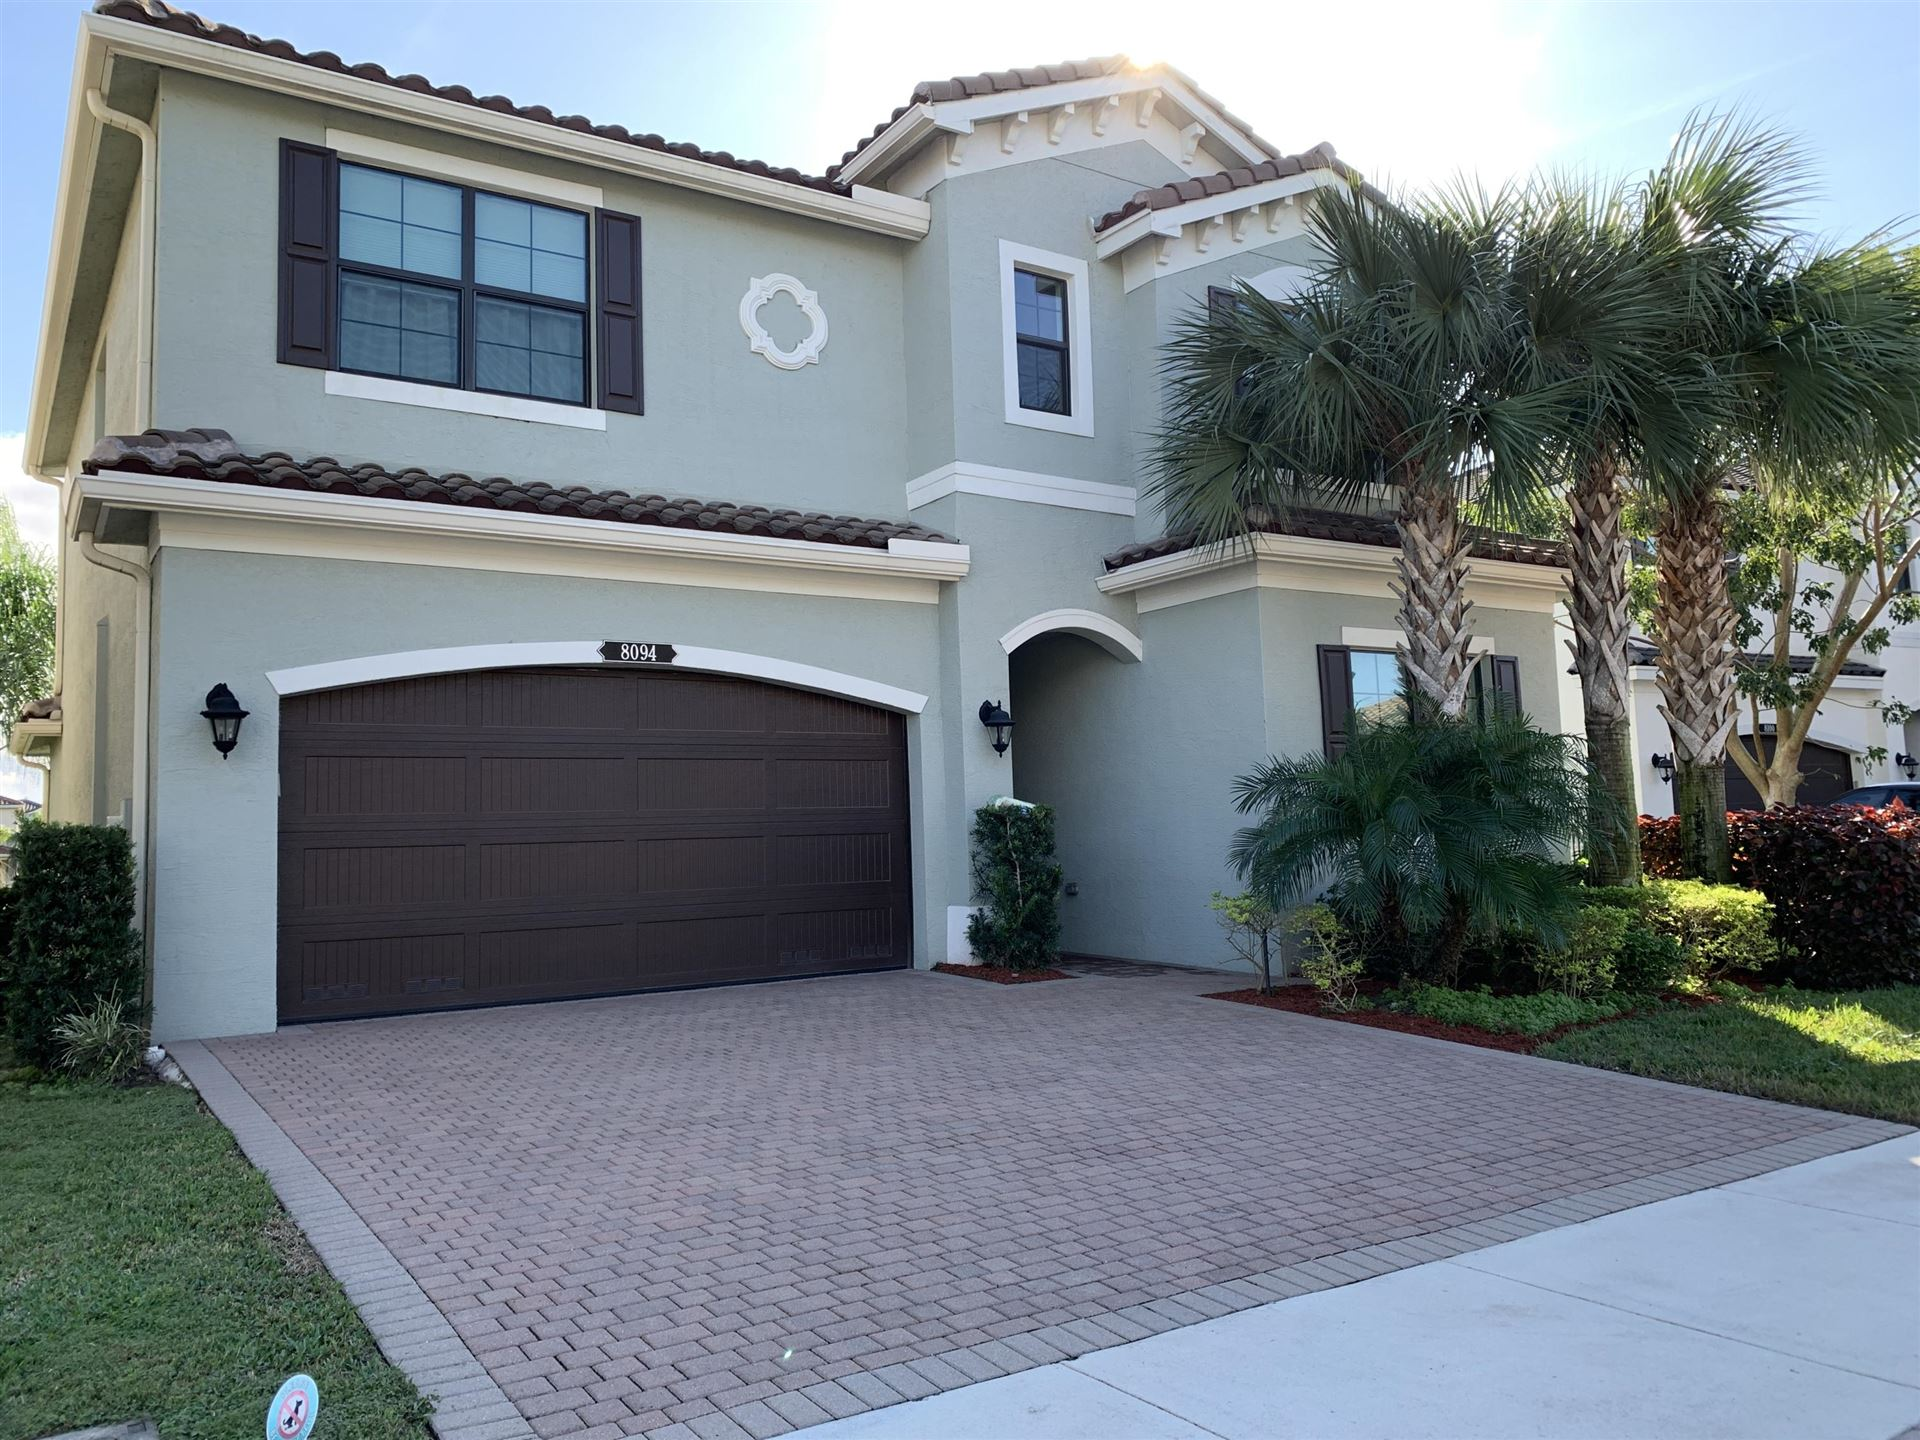 8094 Green Tourmaline Terrace, Delray Beach, FL 33446 - #: RX-10675253